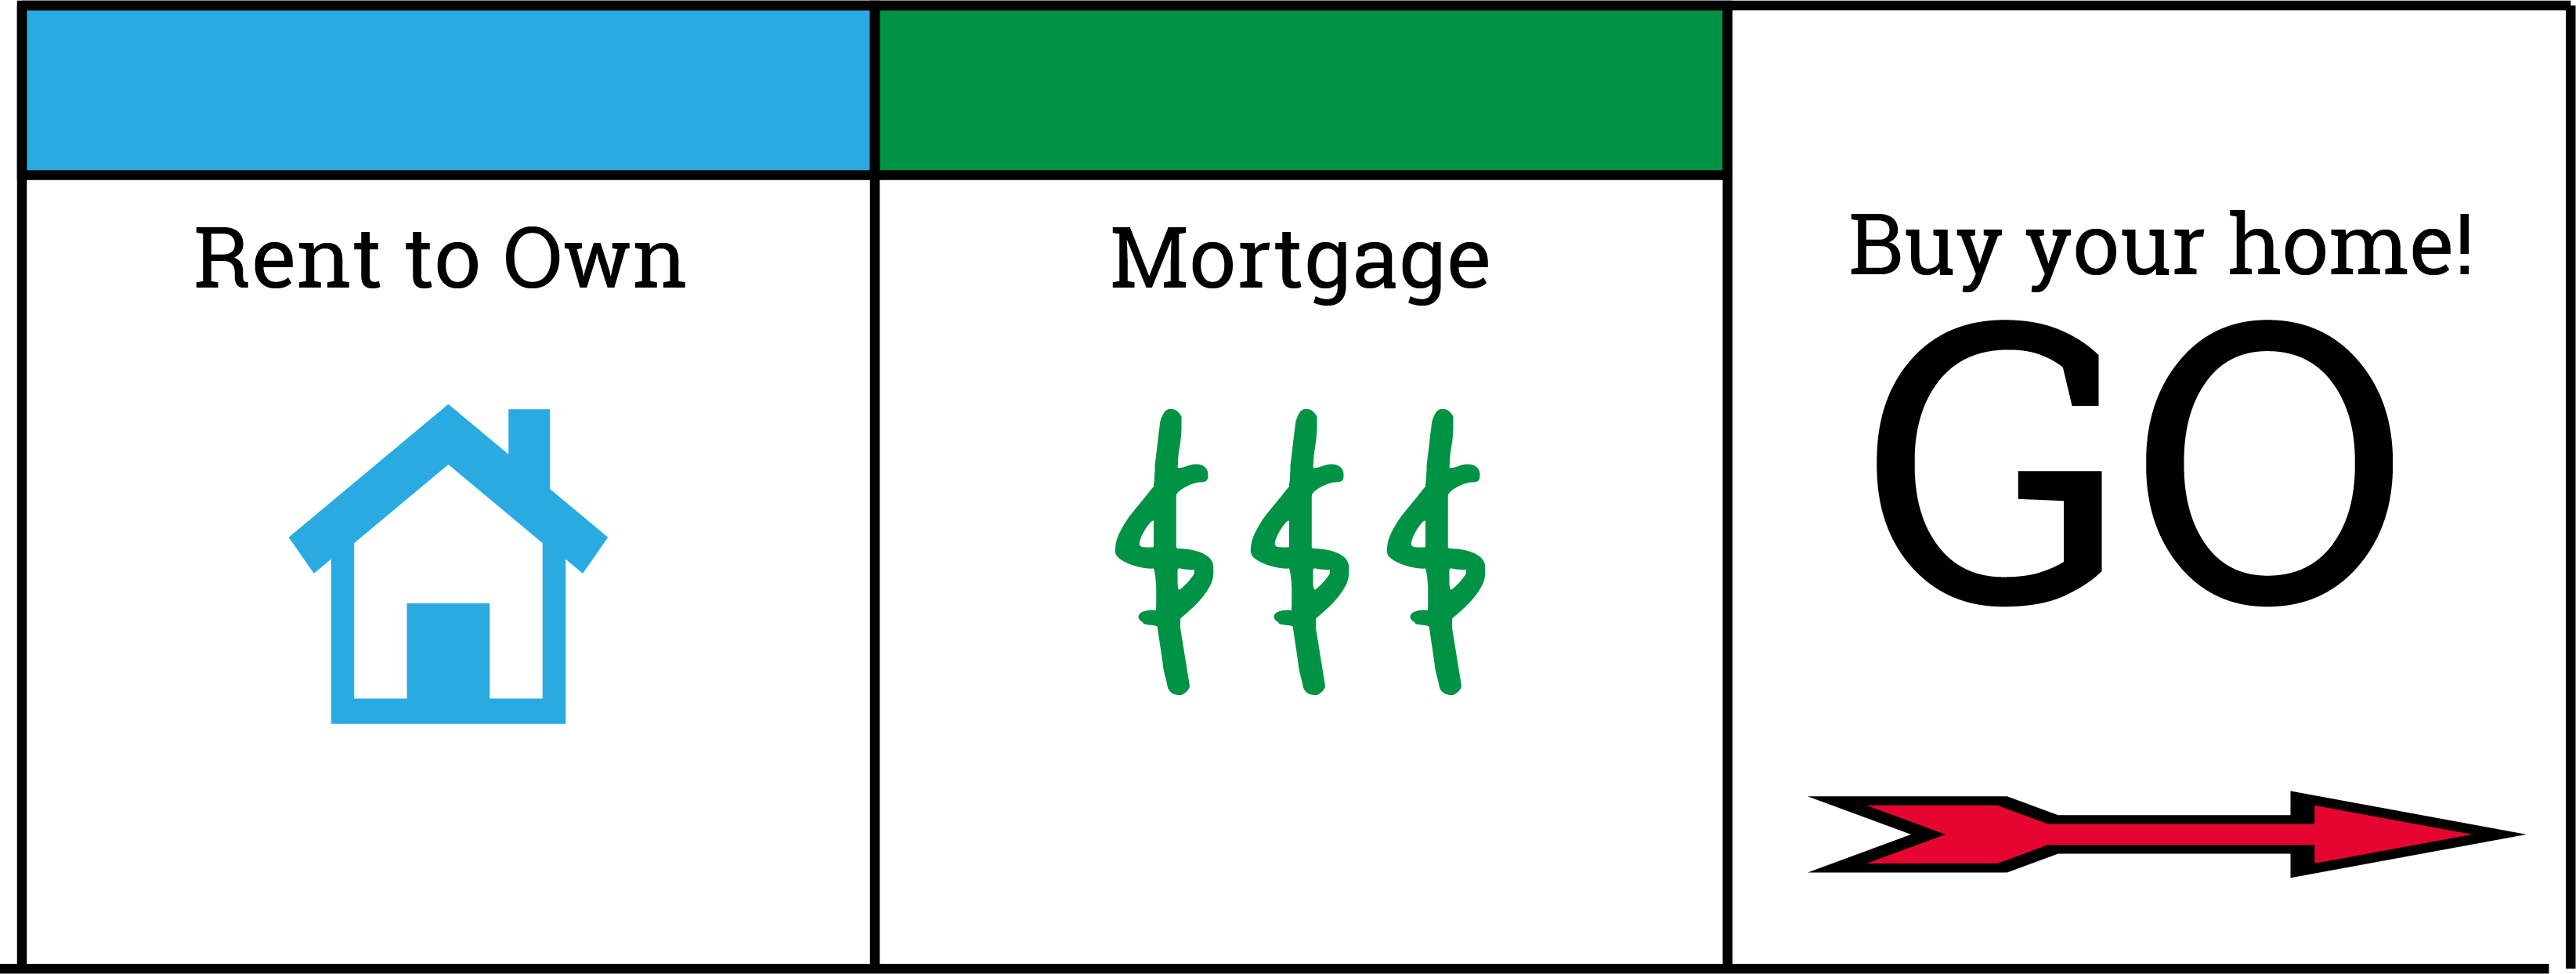 Rent to own and mortgages are as simple as Monopoly – kinda.